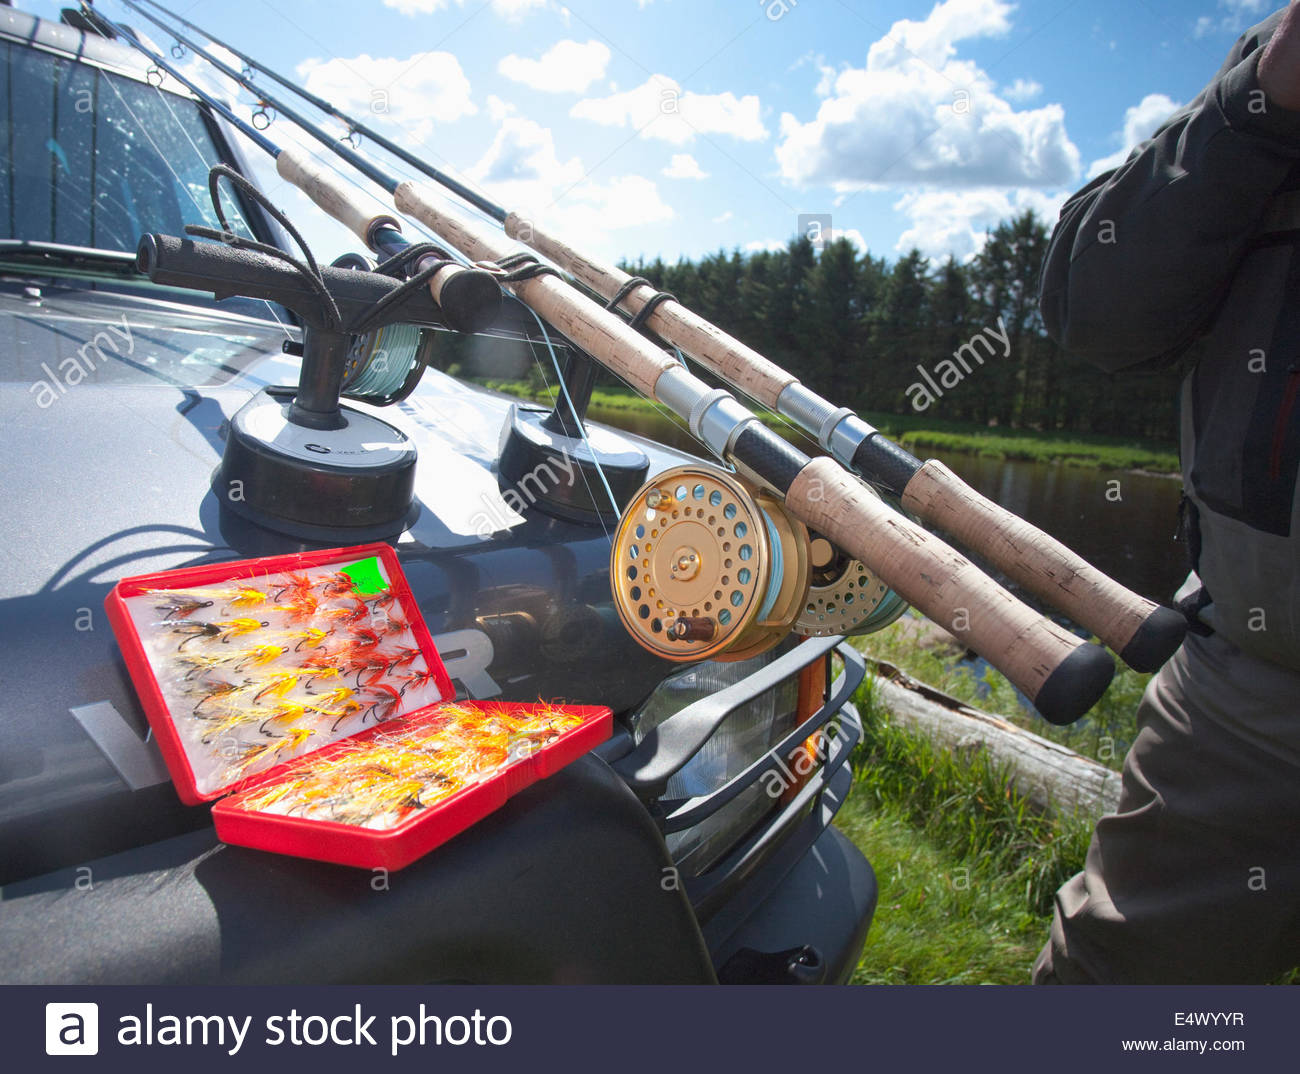 A selection of fishing flies and rods on the bonnet of a car, Scotland - Stock Image